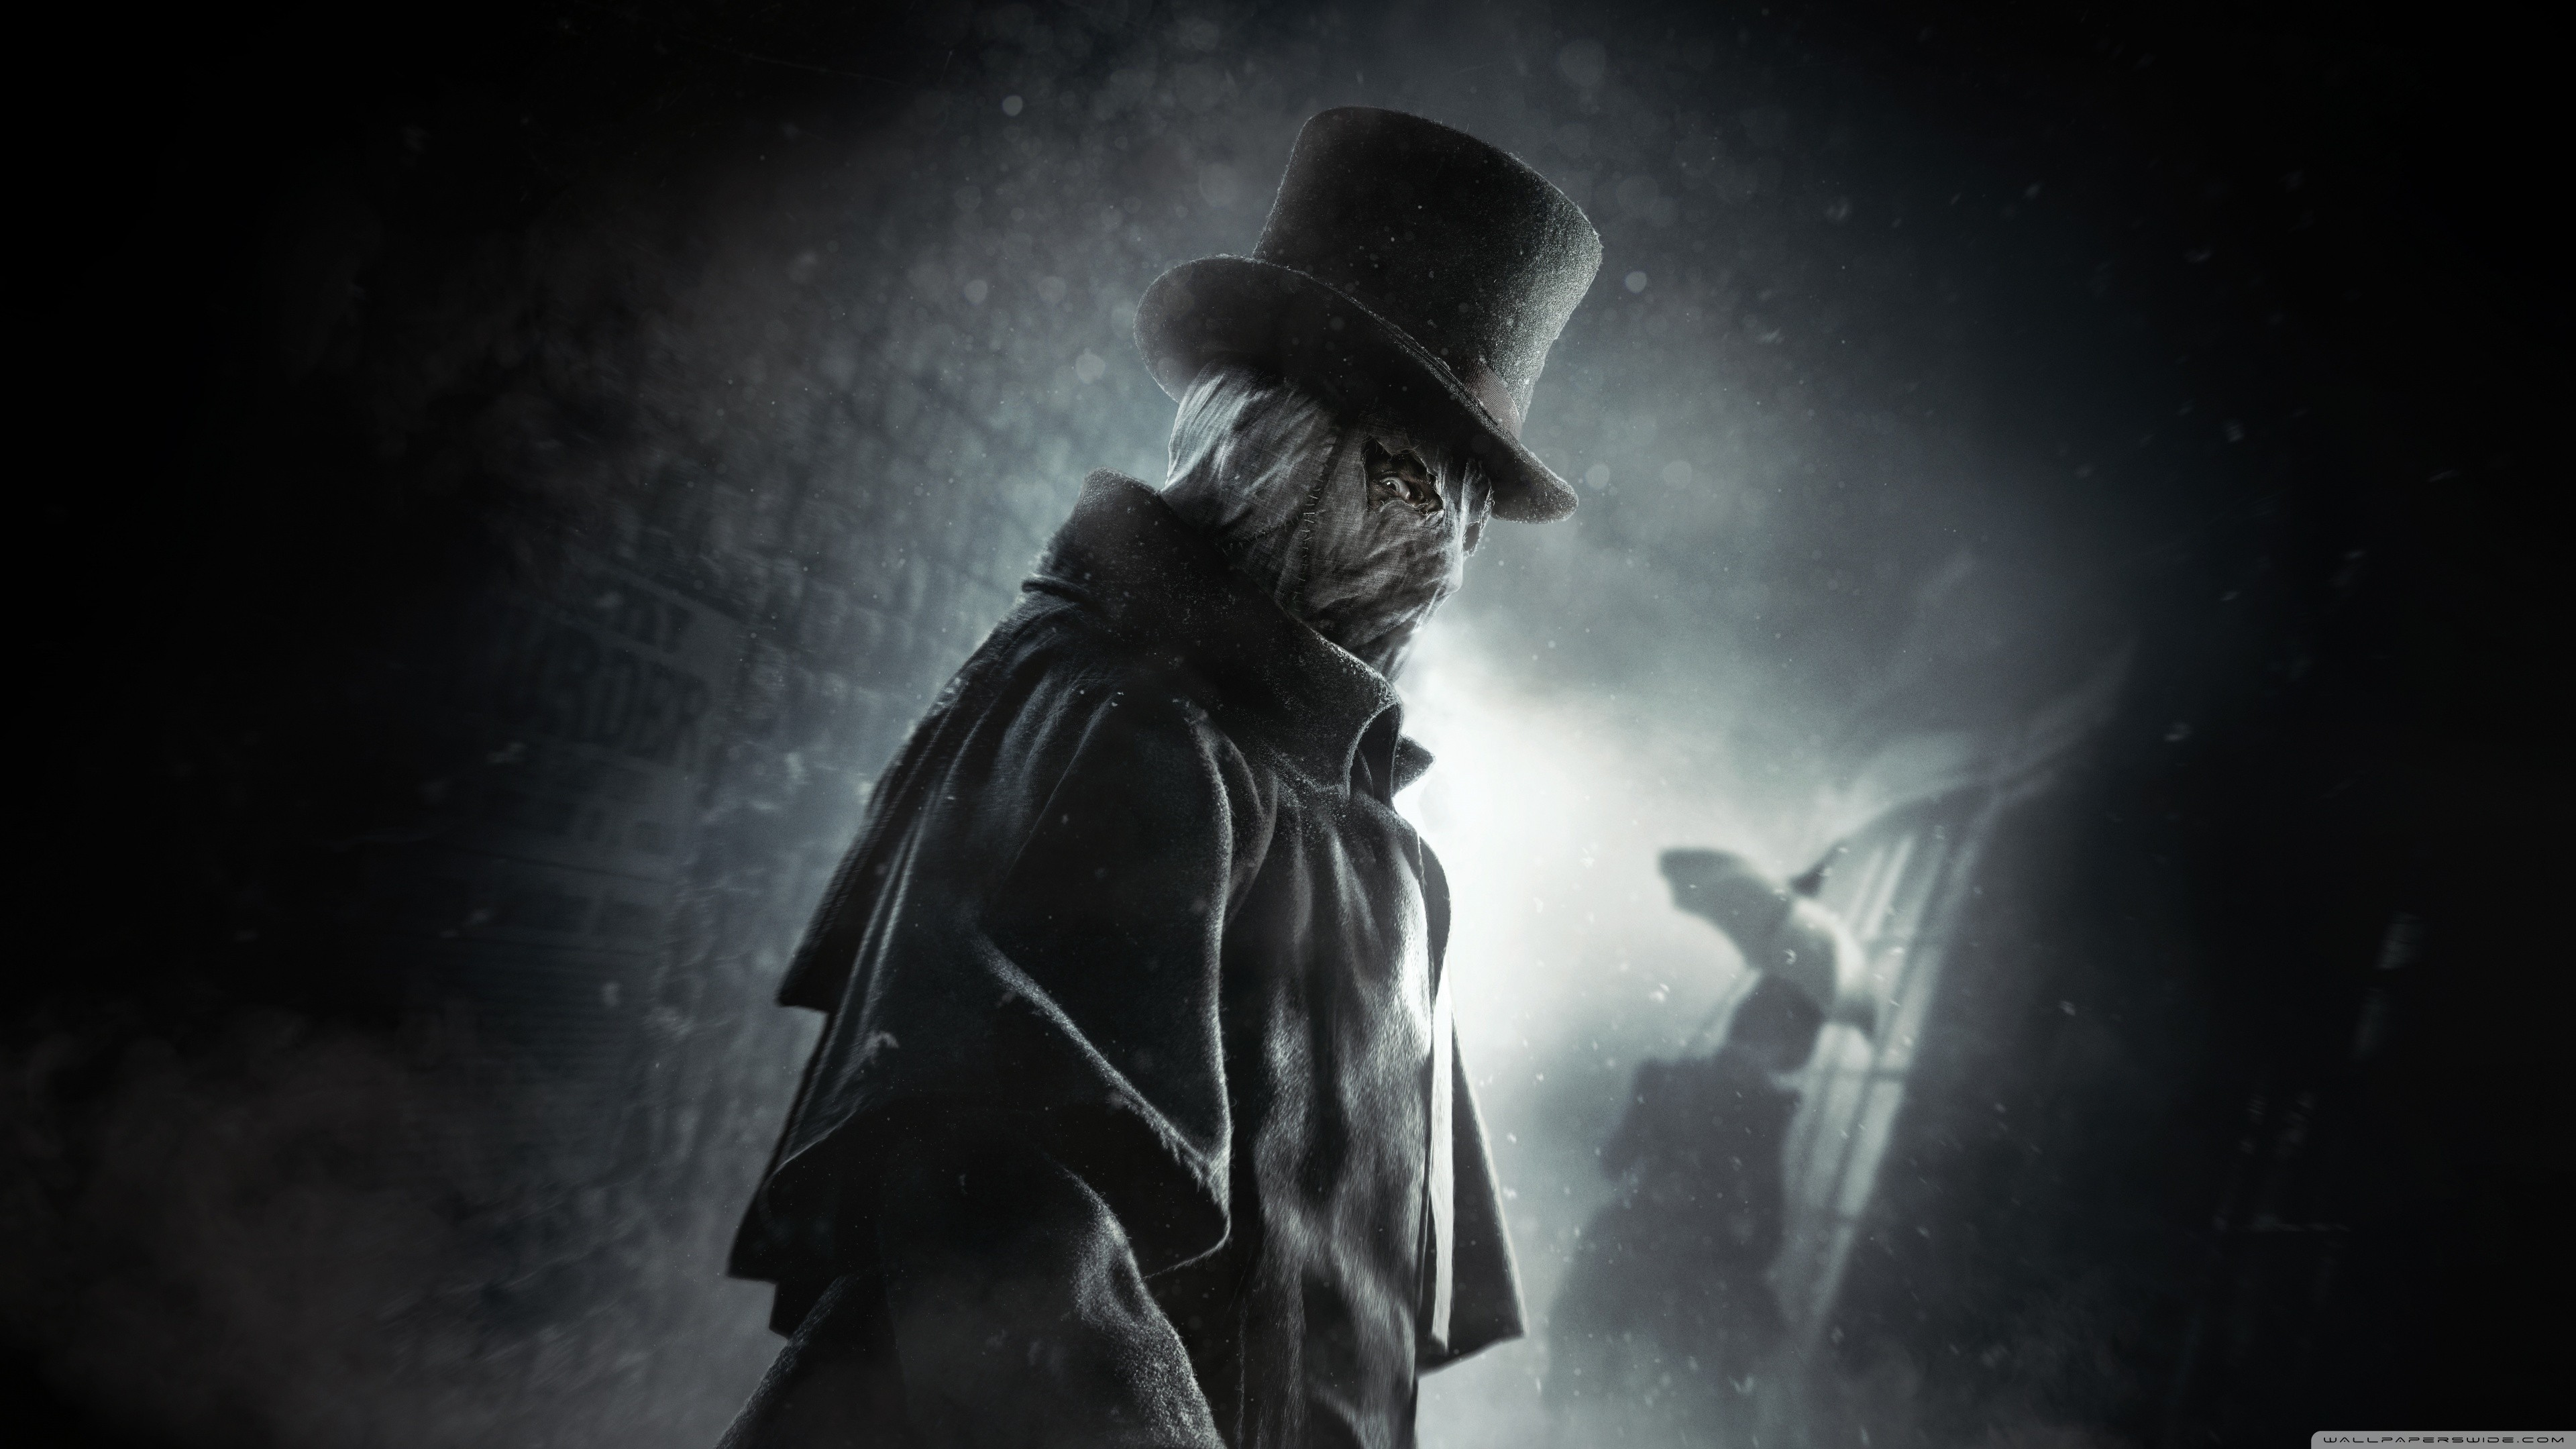 Ultra Hd Assassins Creed Syndicate Jack The Ripper 2015